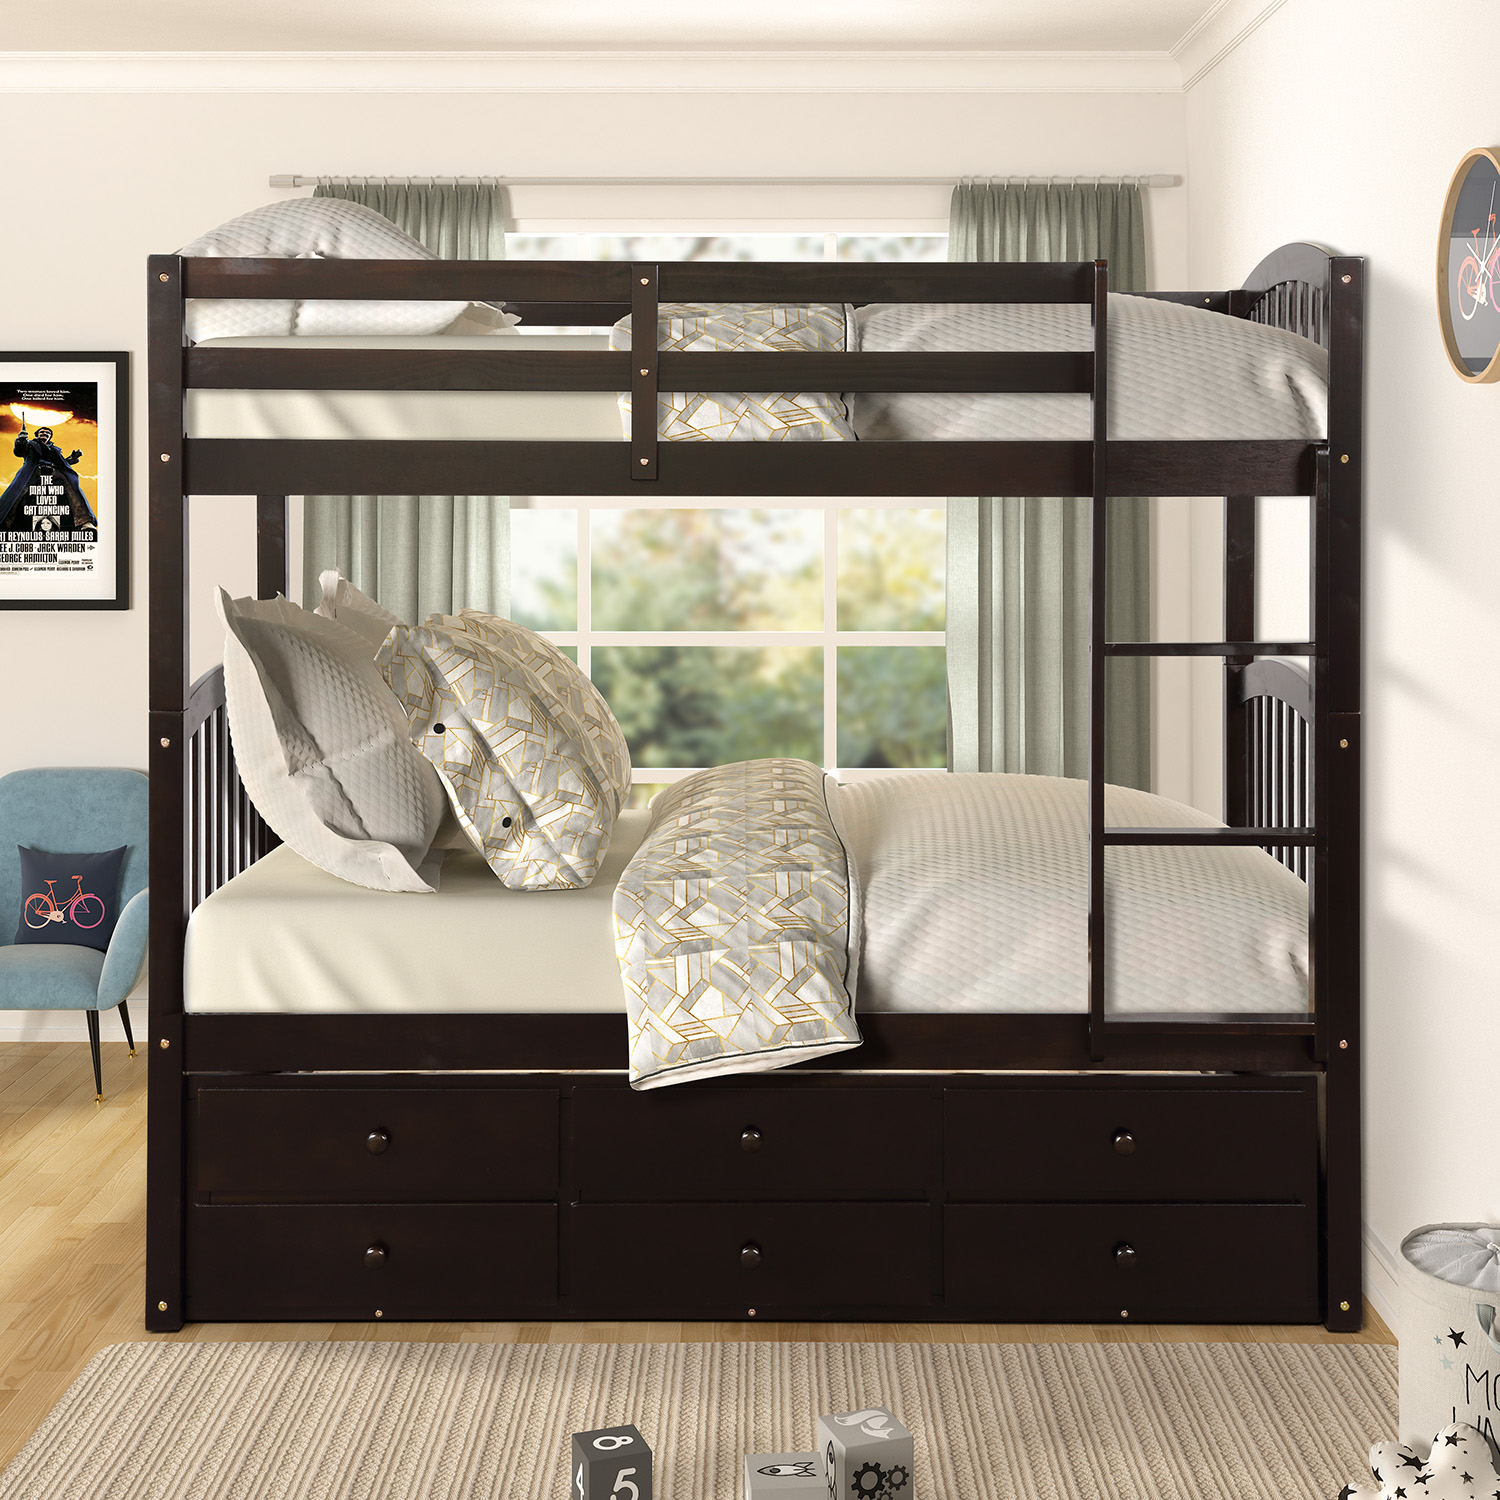 Twin Trundle Bunk Bed With 3 Storage Drawers Modern Twin Bunk Bed With Ladder And Safety Rail Twin Over Twin Bunk Bed Frame For Kids Teens Bedroom Bunk Bed Frame Twin Over